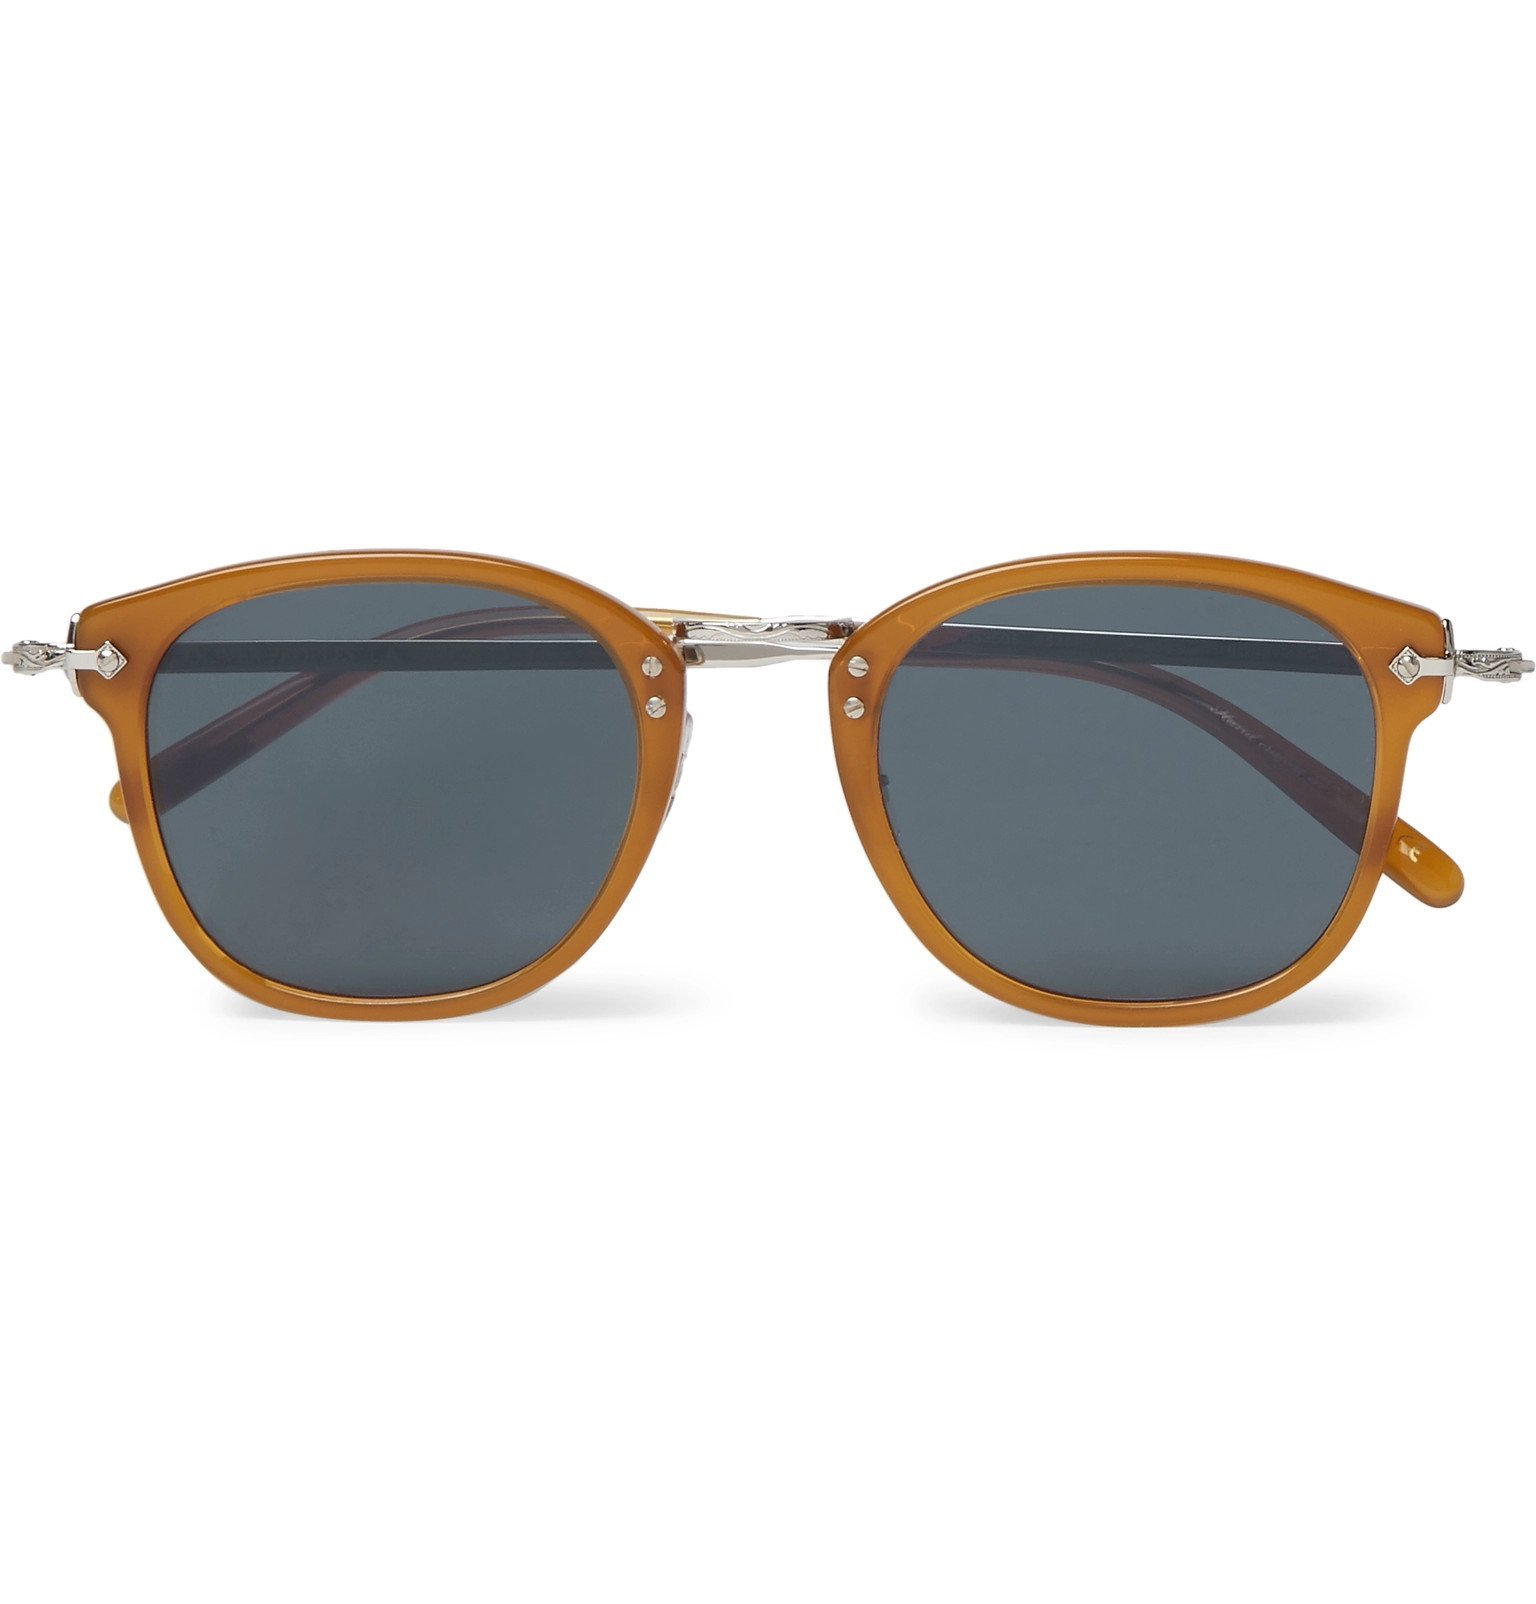 Oliver Peoples - OP-506 D-Frame Acetate and Silver-Tone Sunglasses - Yellow